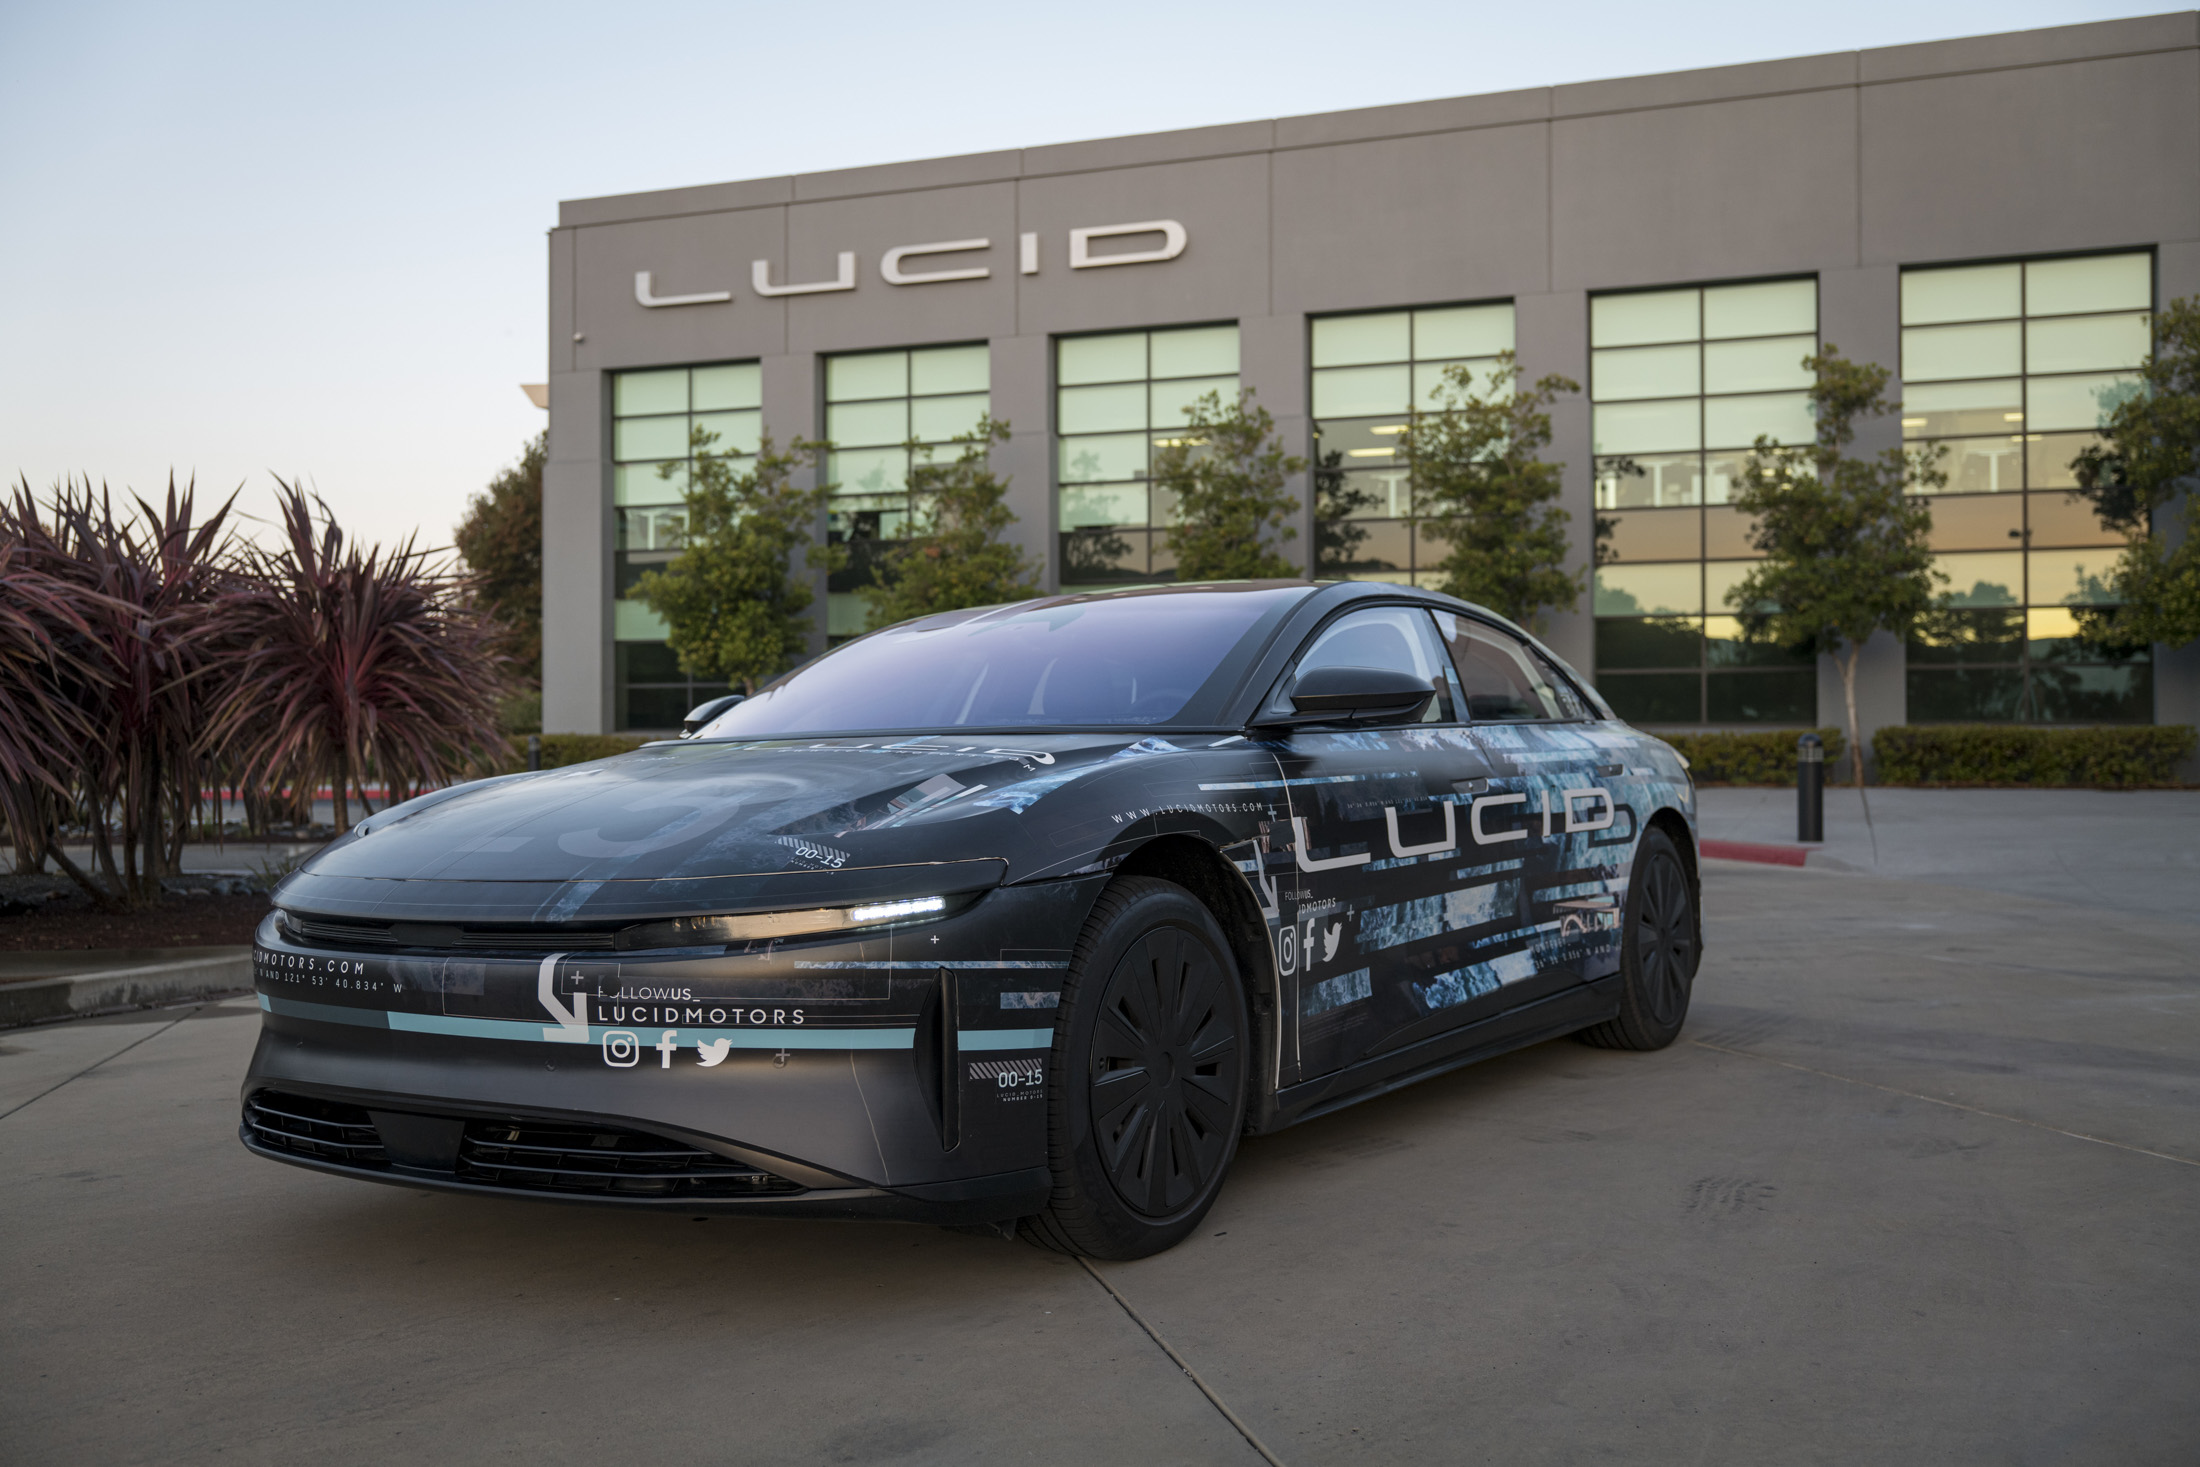 How Lucid S New Electric Car Stacks Up Against Tesla And Porsche Governors Wind Energy Coalition